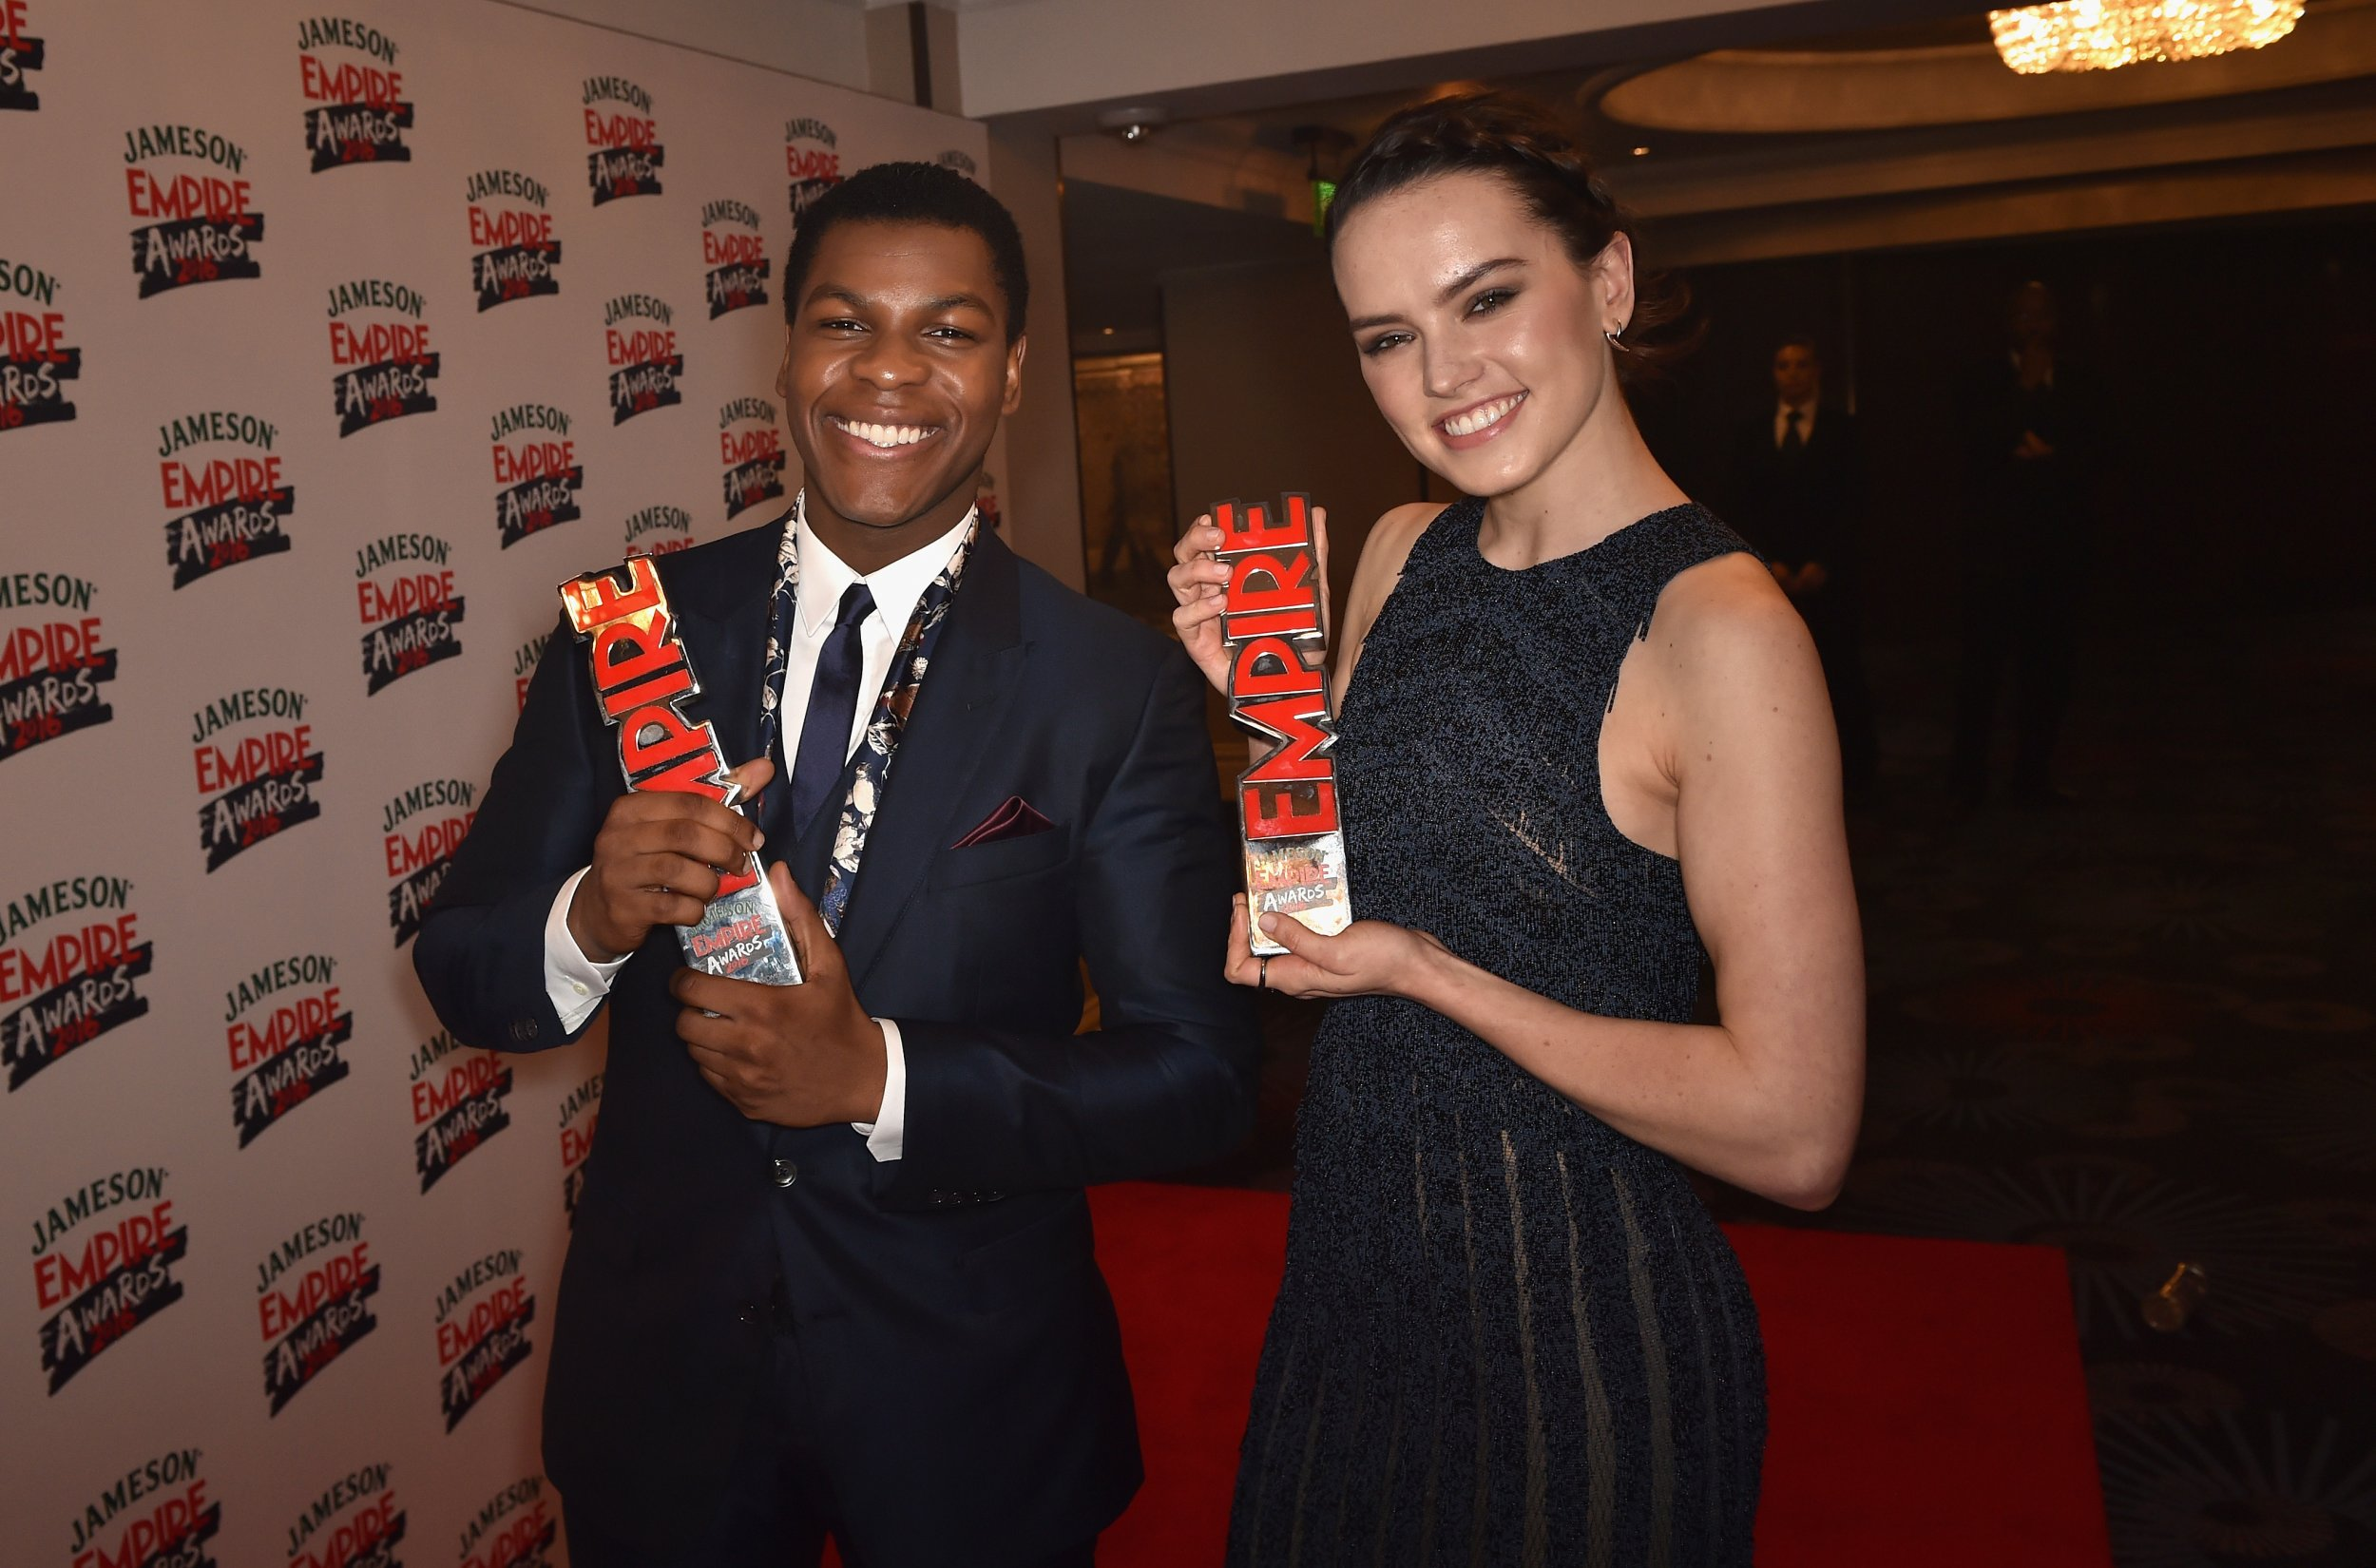 Daisy Ridley and John Boyega at Empire Awards 2016